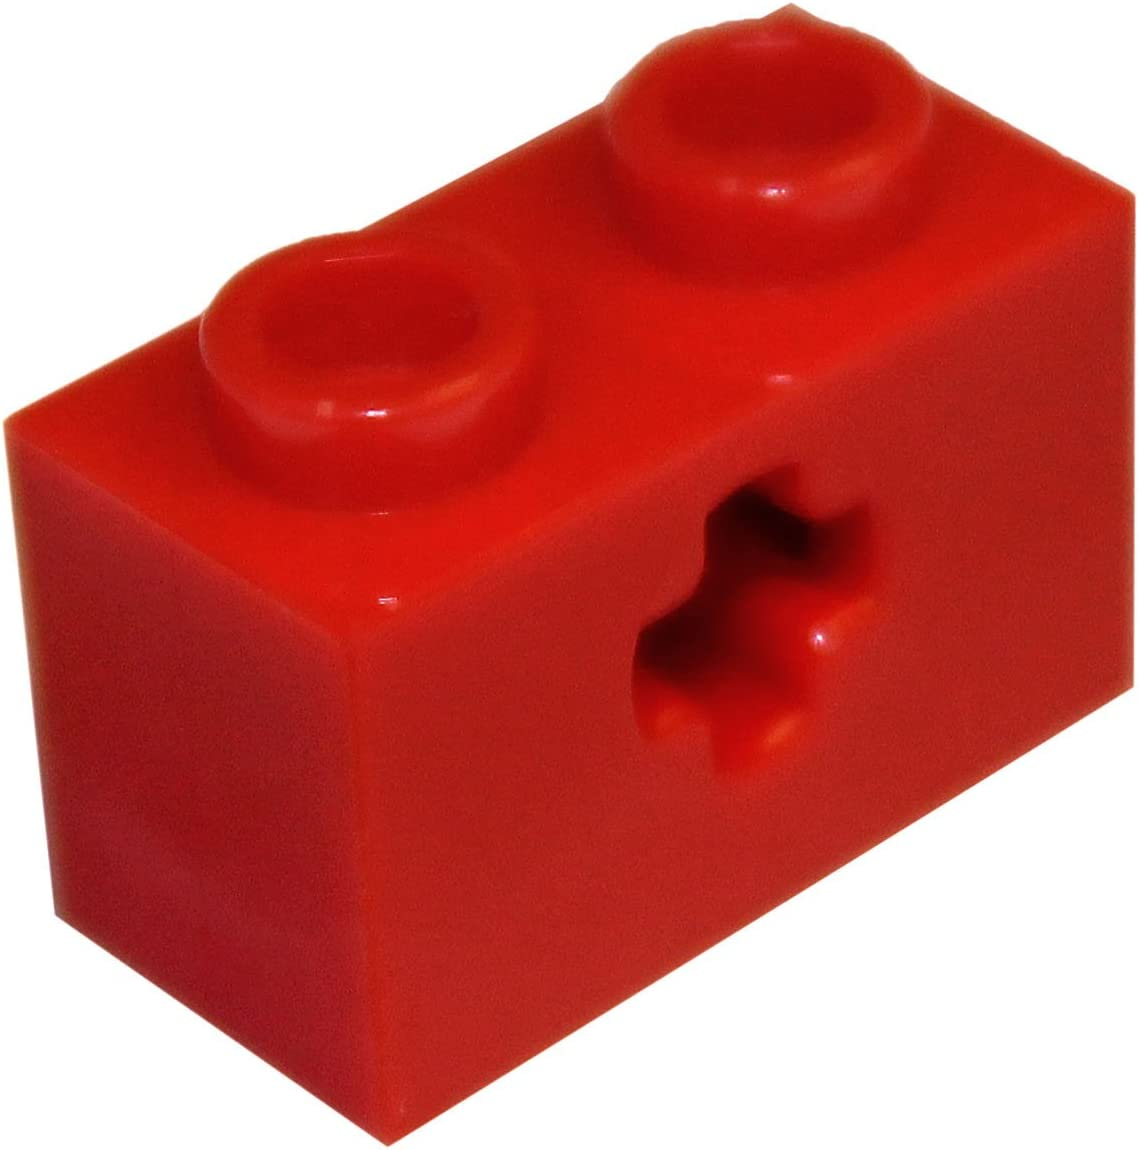 LEGO Lot of 10 Red 1x2 Technic Brick Pieces